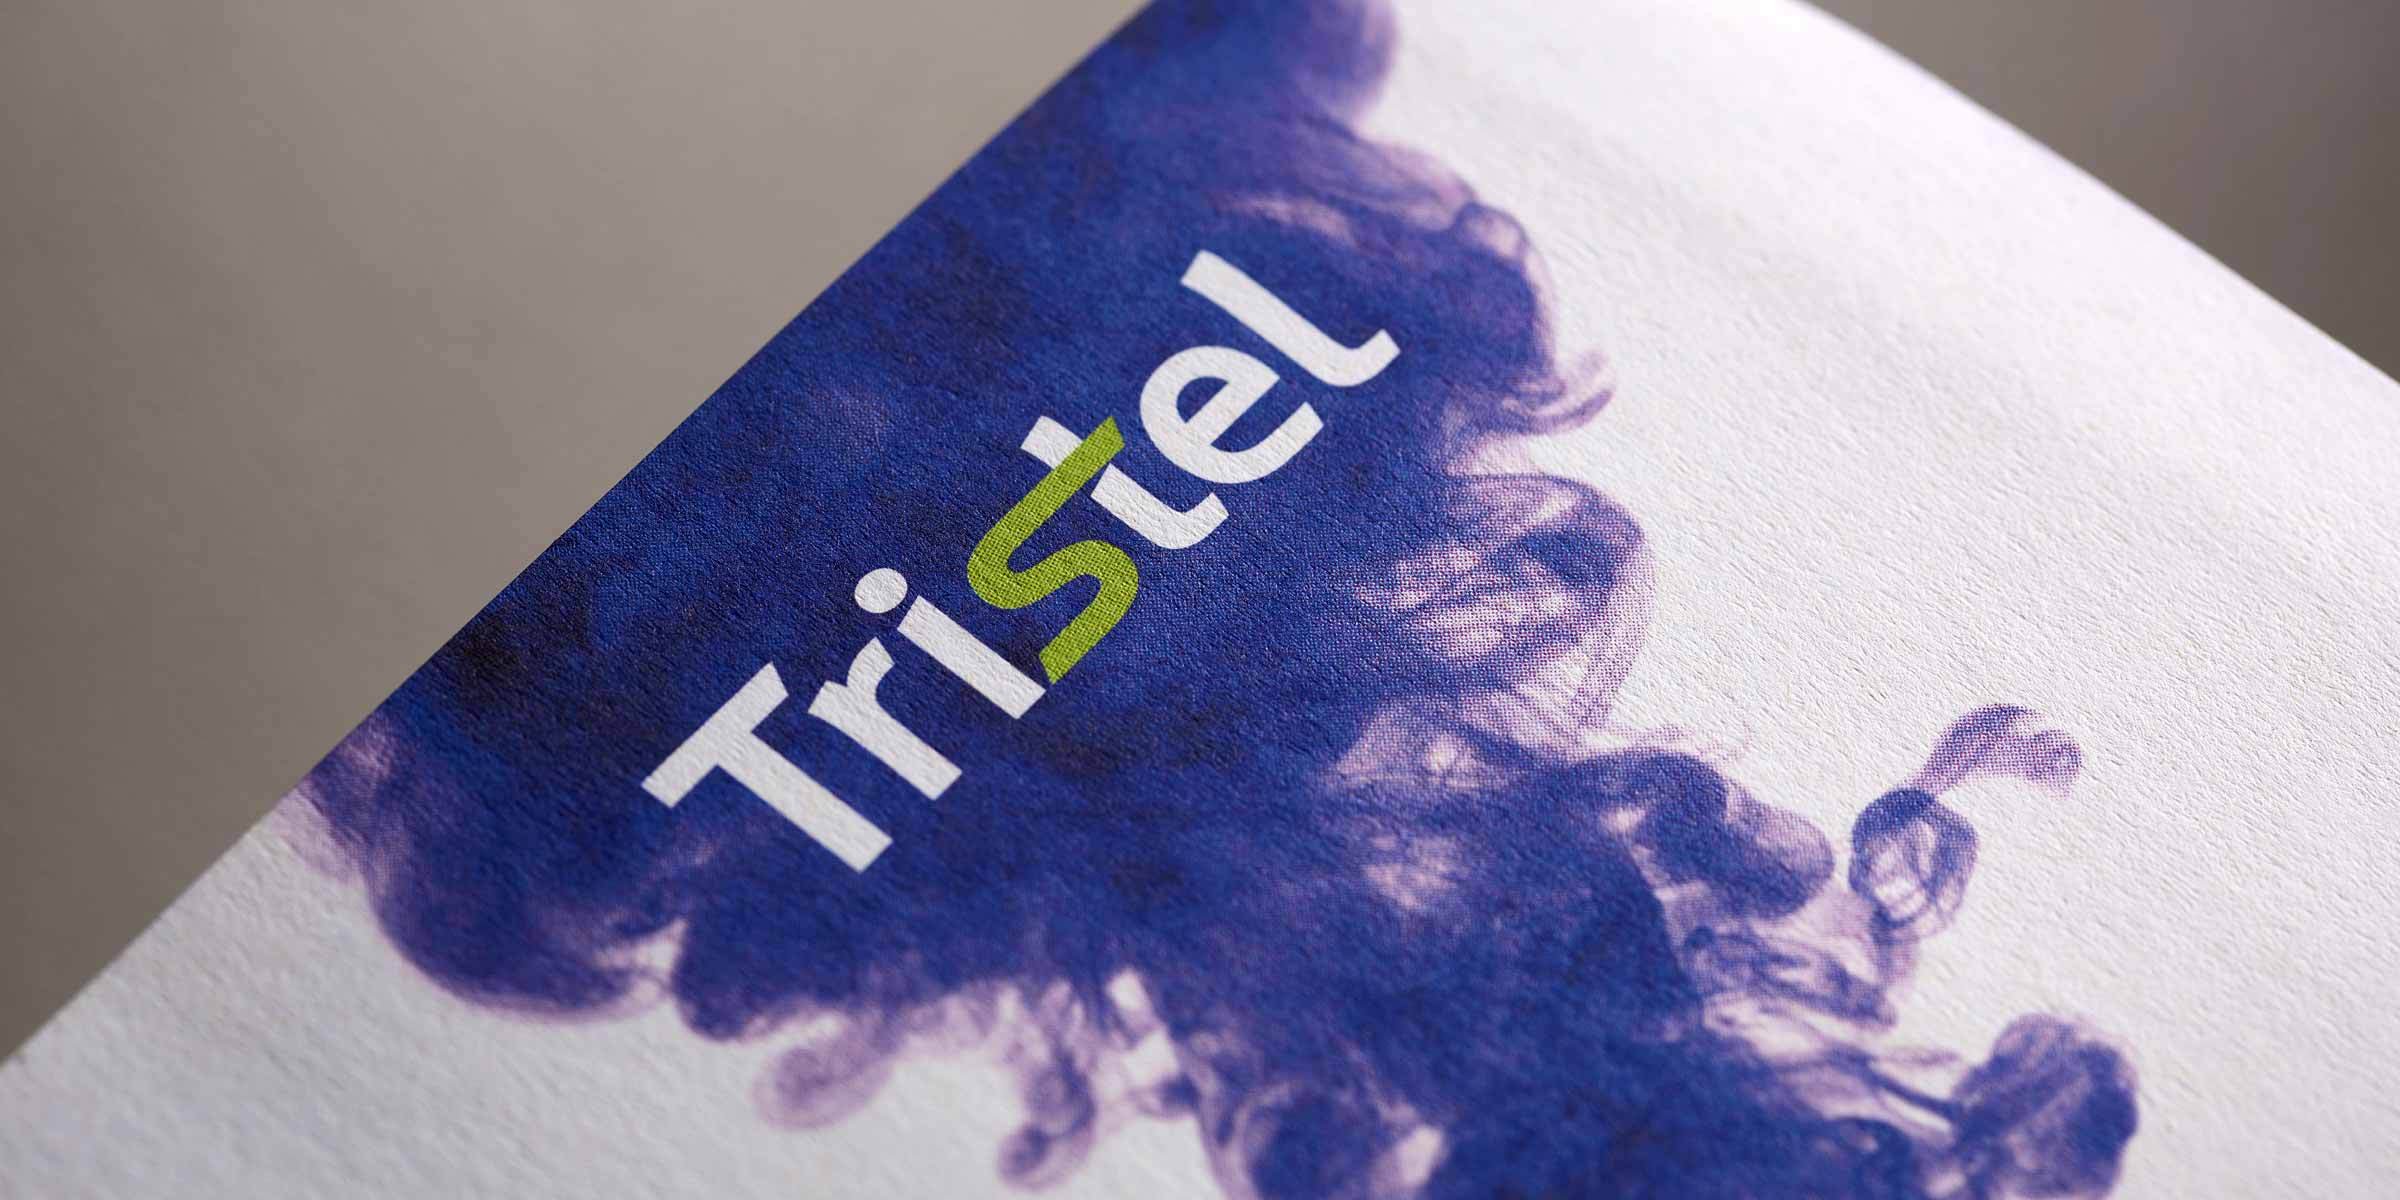 Tristel logo printed on purple medical type background